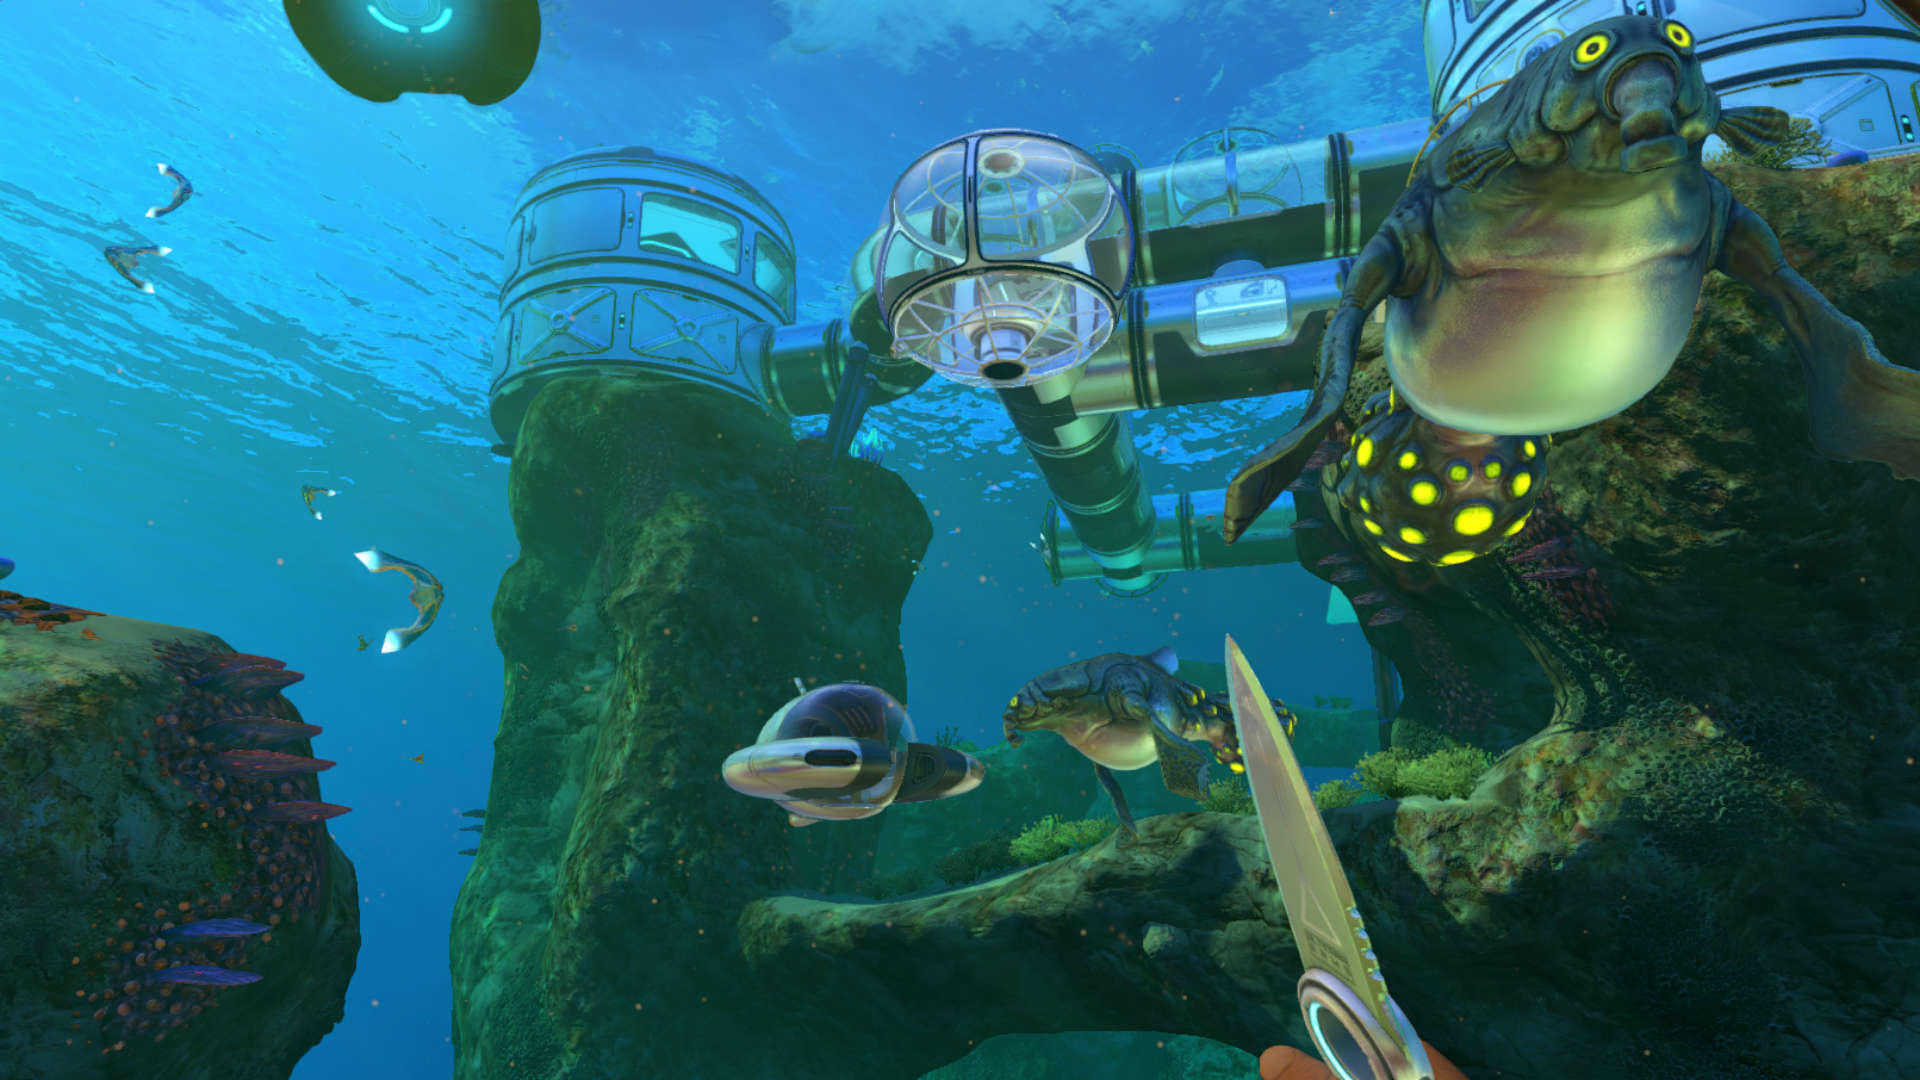 Subnautica guide: map, mods, and items to help you survive